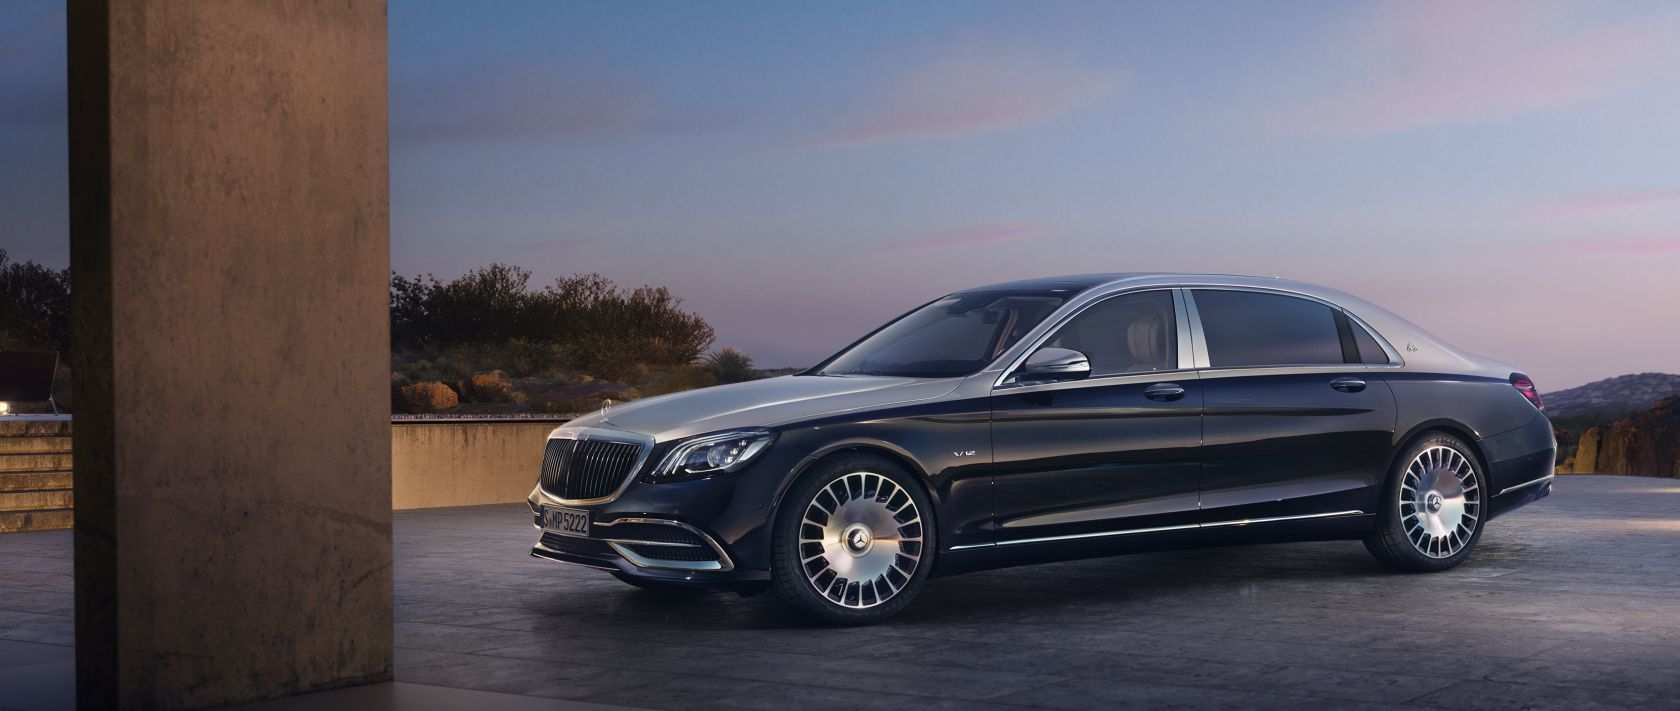 34 The Mercedes S650 Maybach 2019 Release Date And Concept